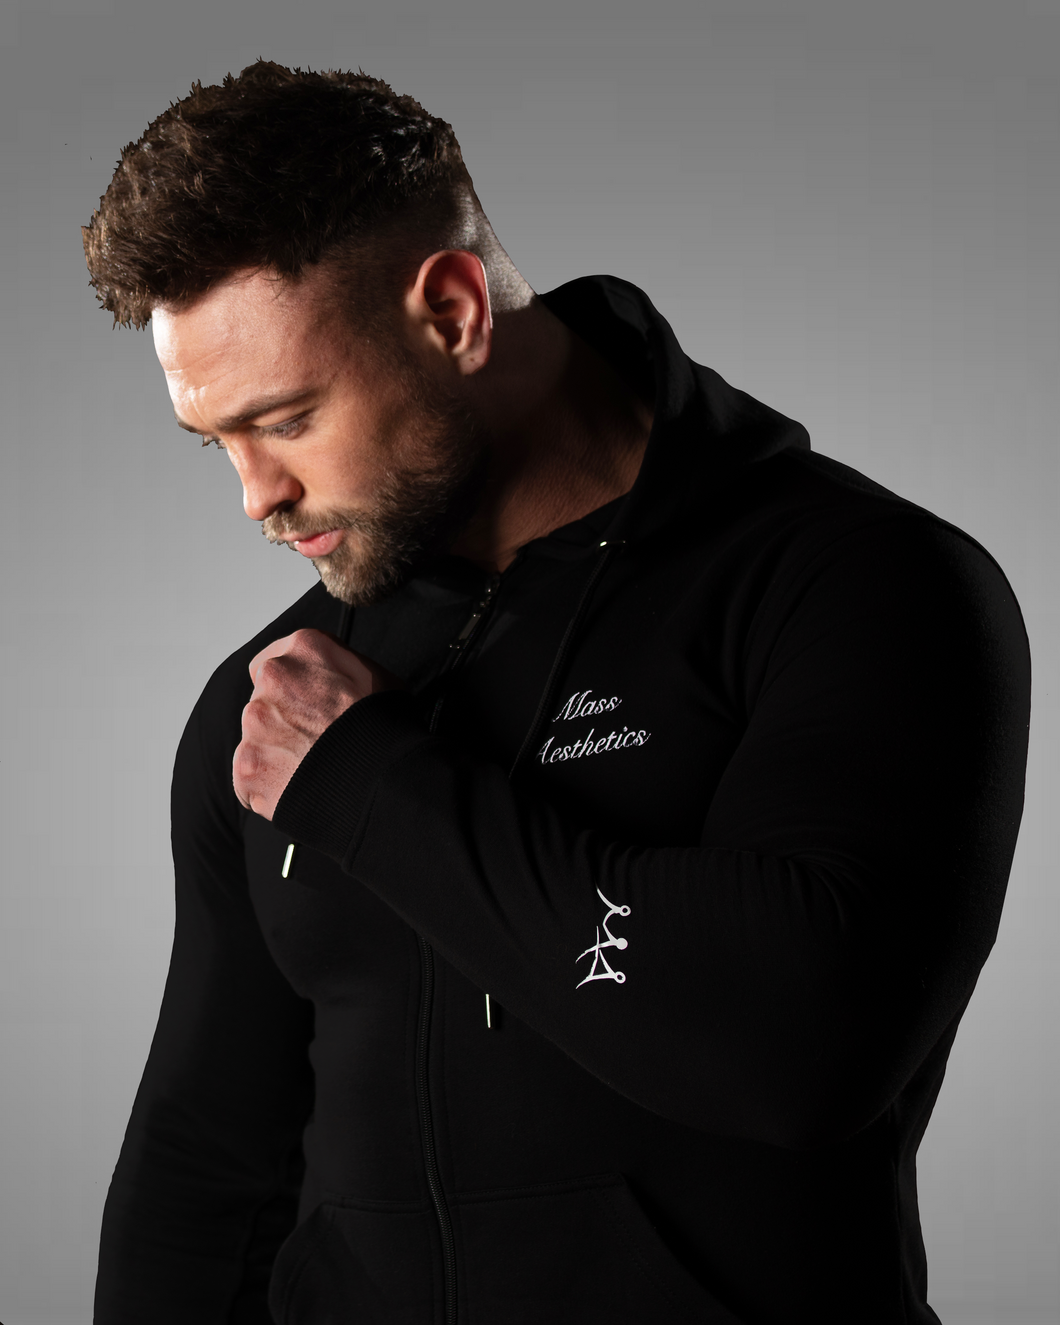 product shot of a male wearing a zipped black gym hoodie